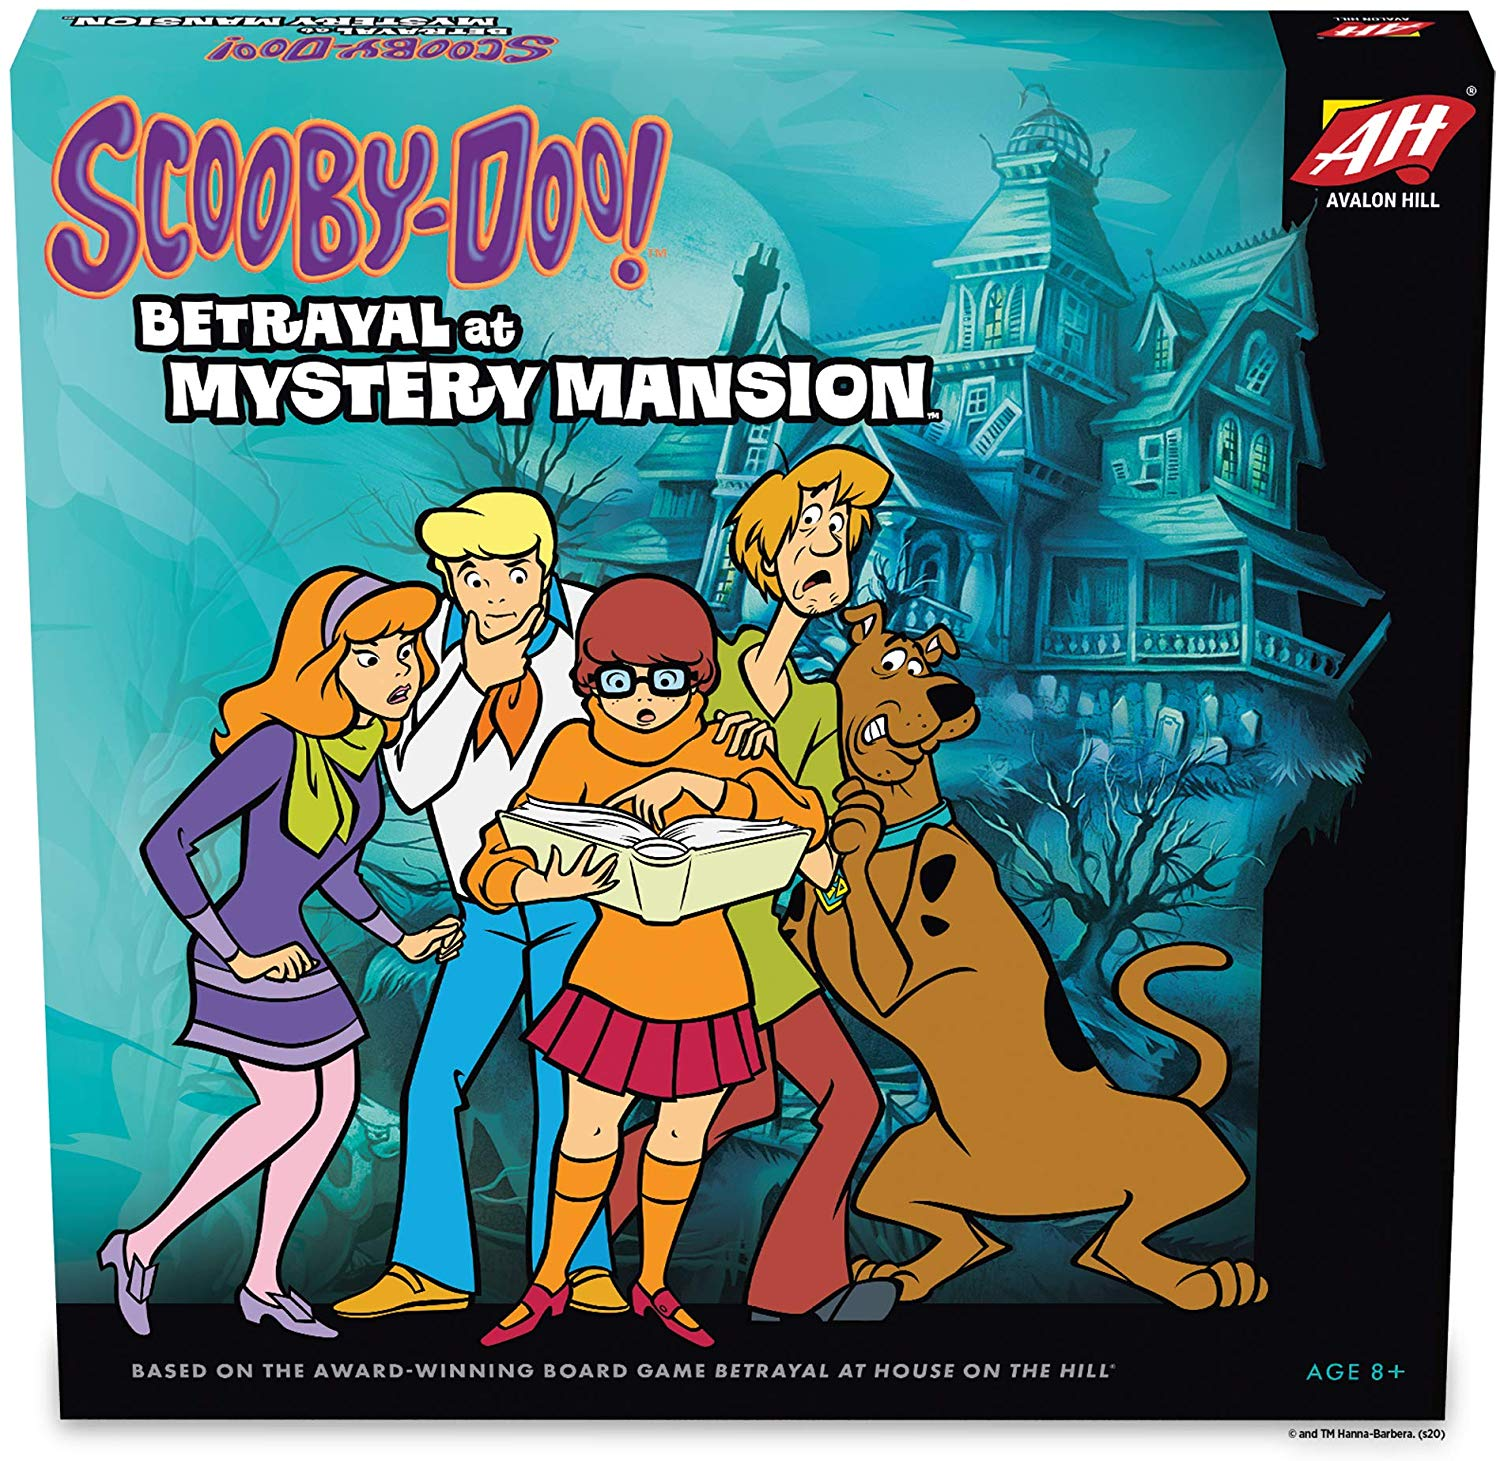 Scooby-Doo: Betrayal at Mystery Mansion